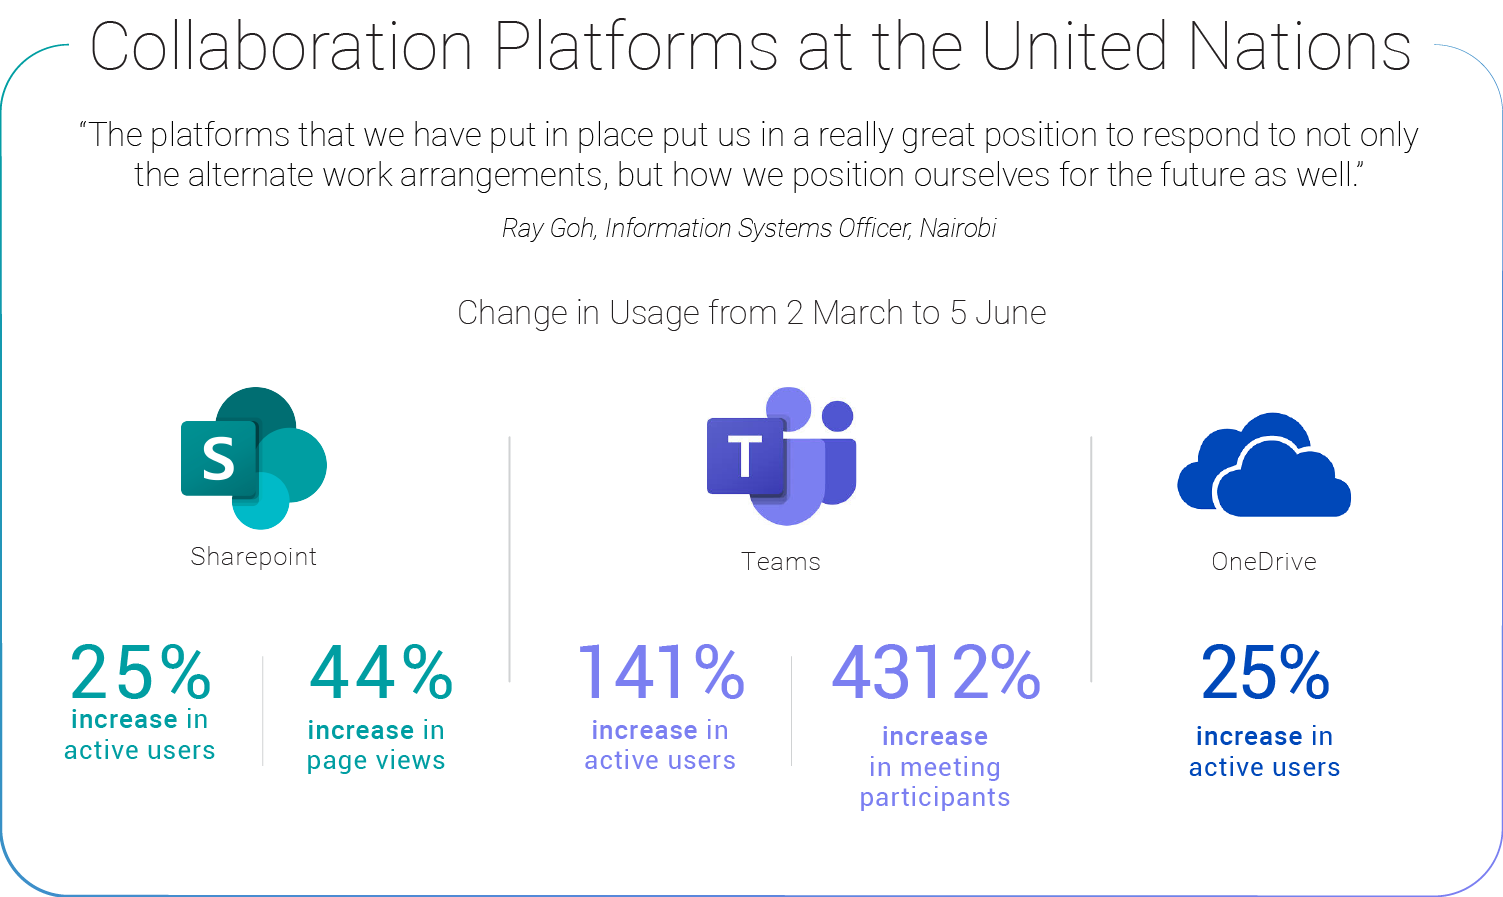 Visual showing the increase in use of collaboration platforms from March 2020 to June 2020